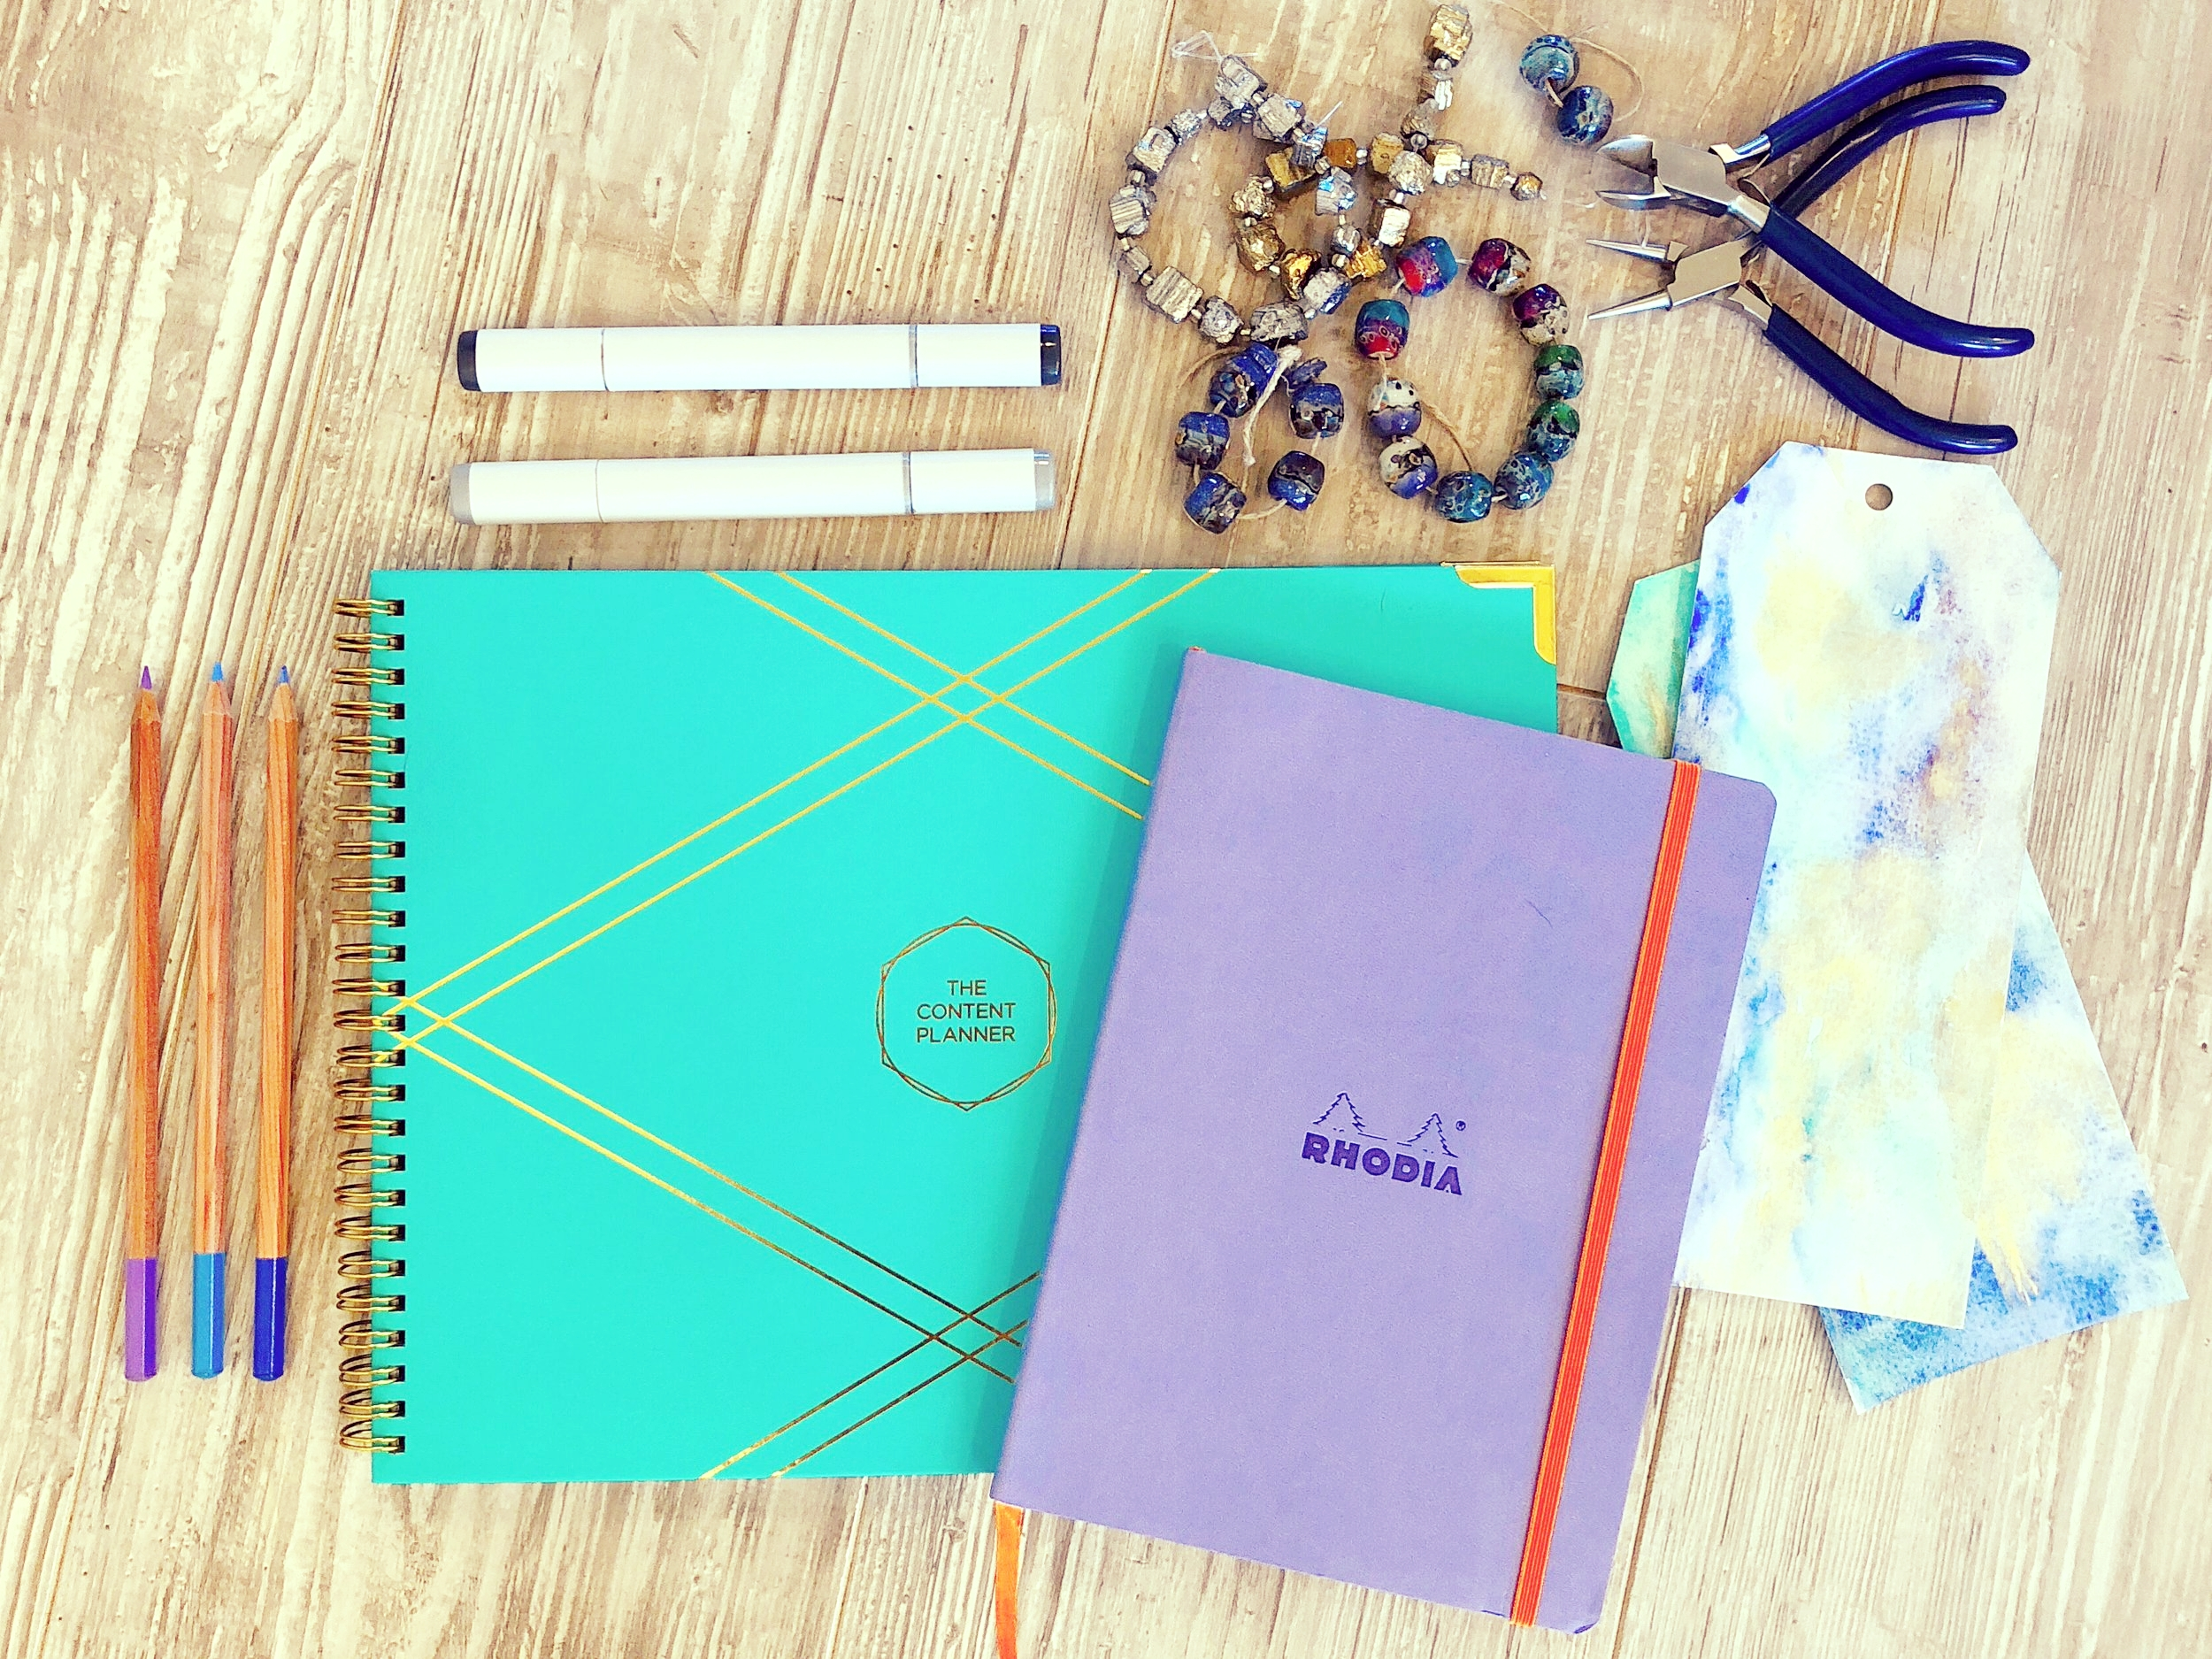 Planning tools for upping my blog and creative game